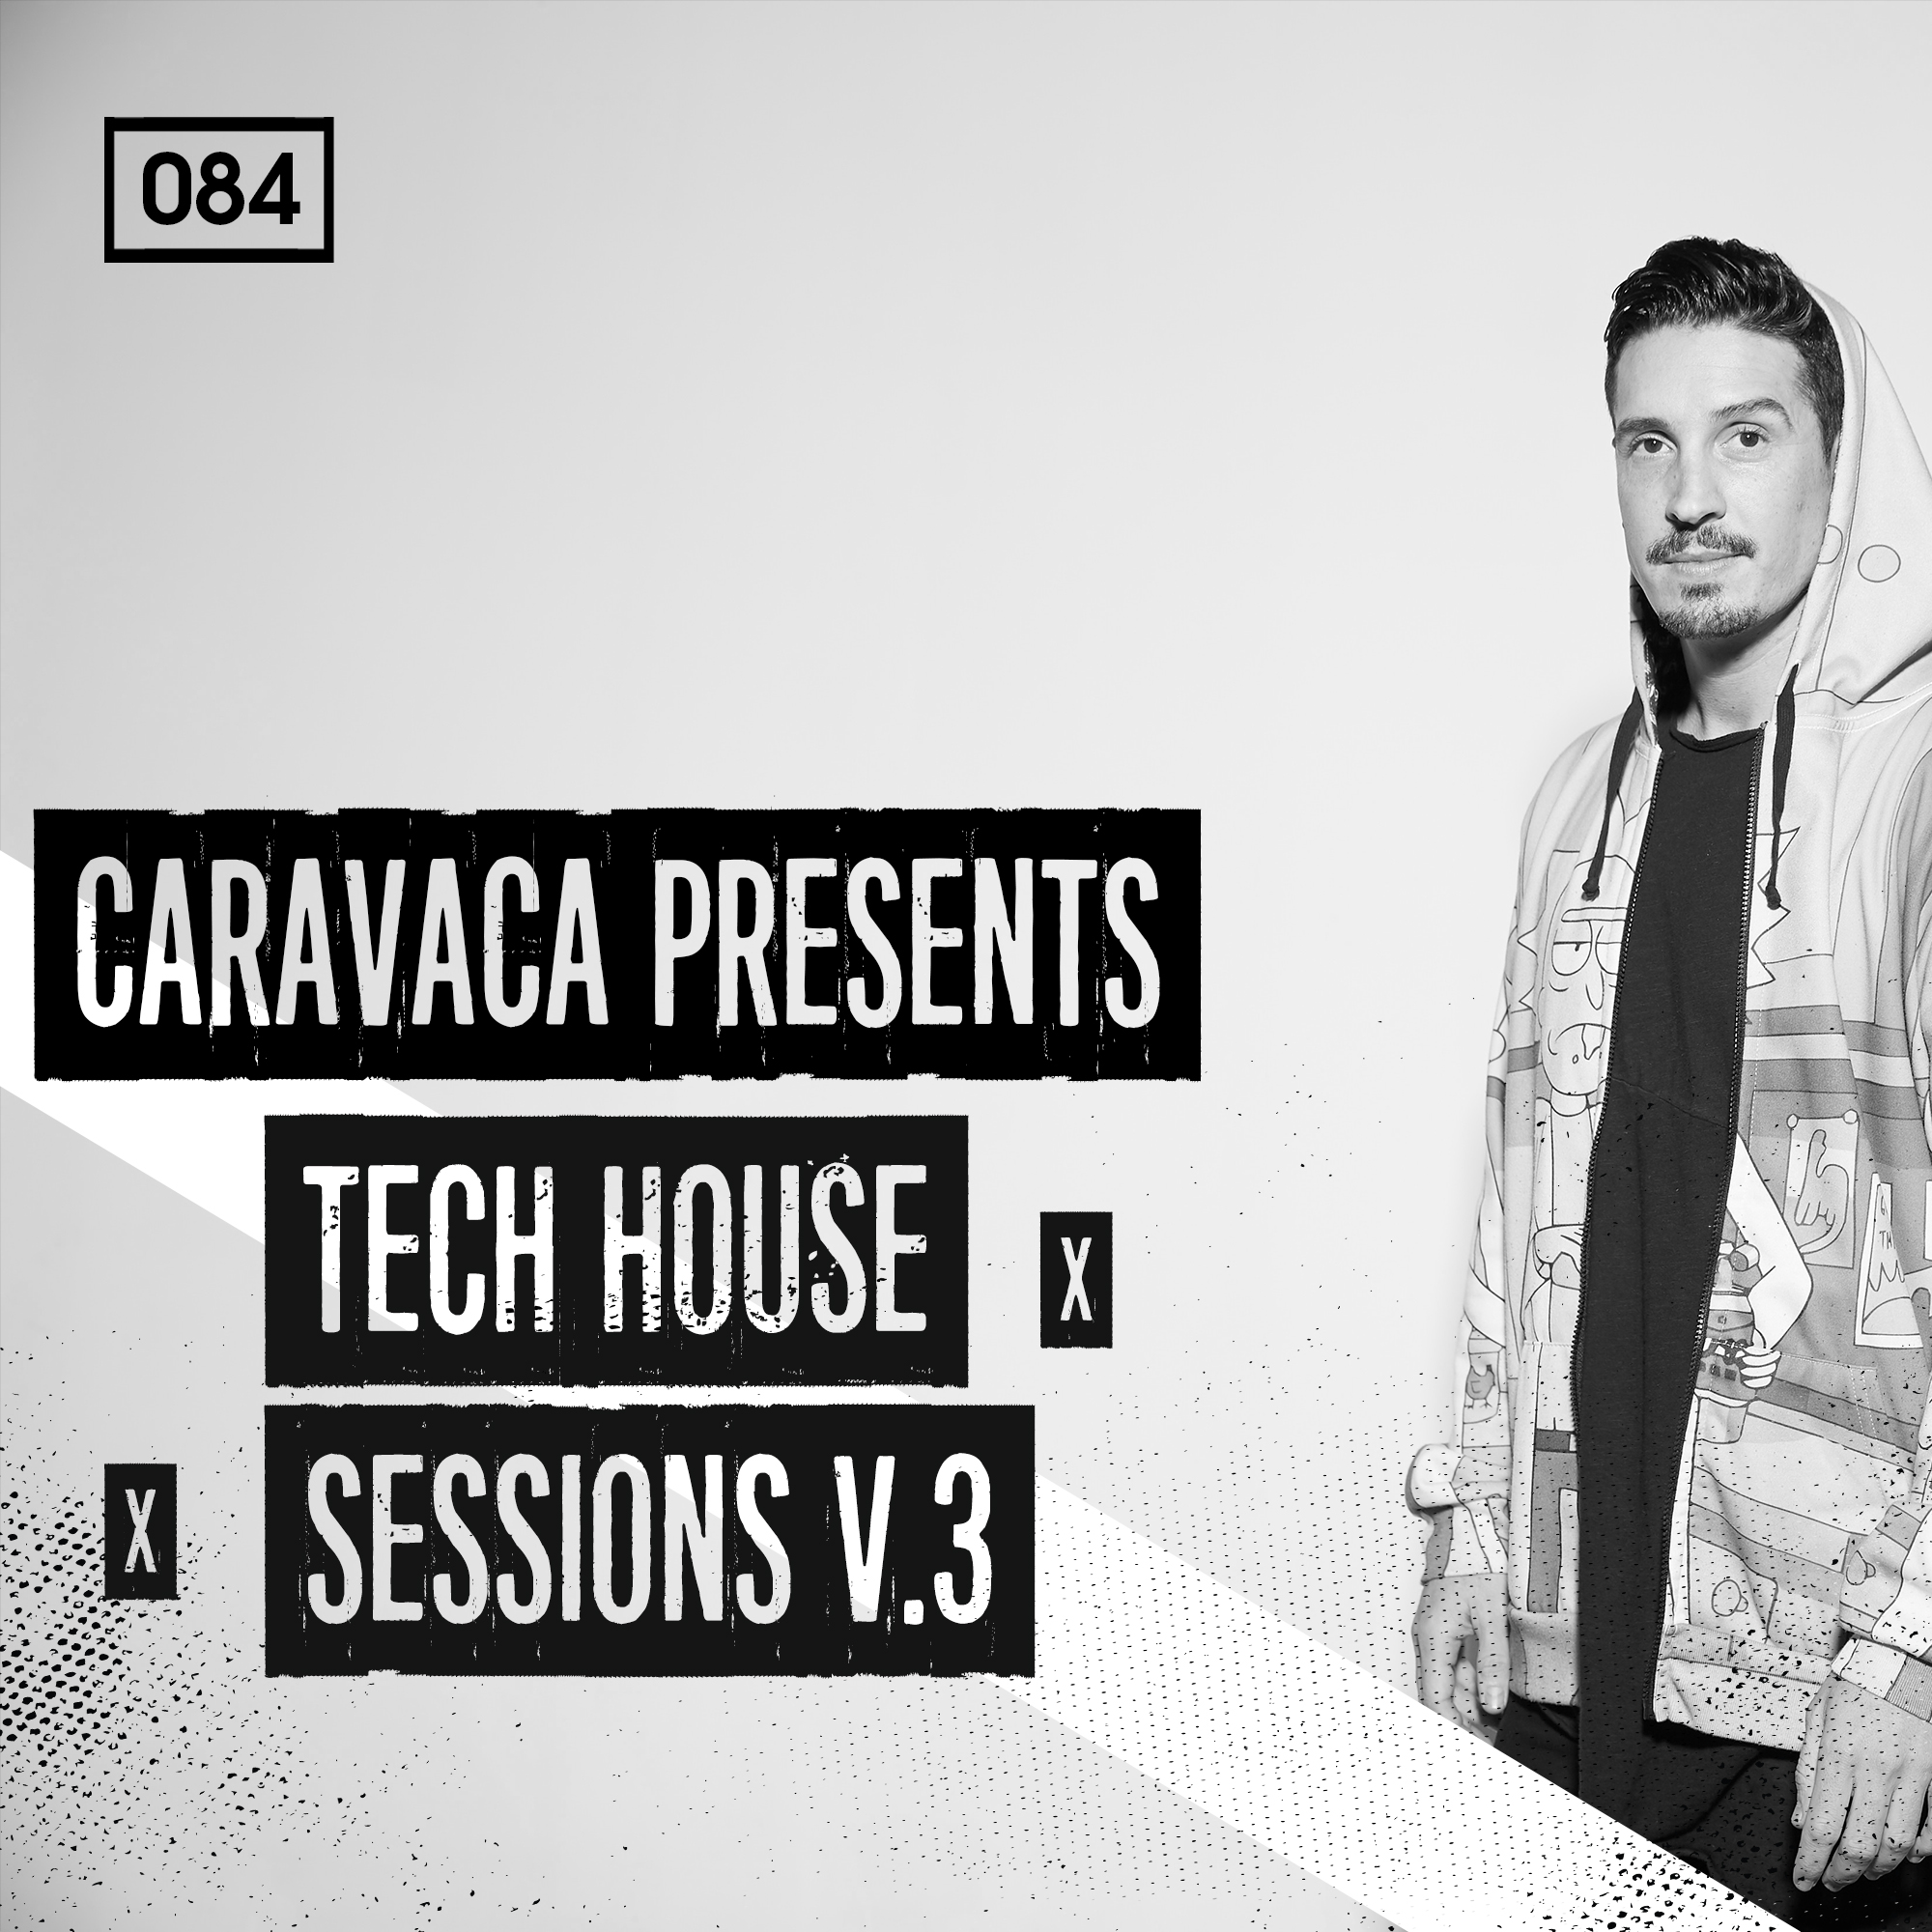 Bingoshakerz Caravaca Tech House Sessions V3